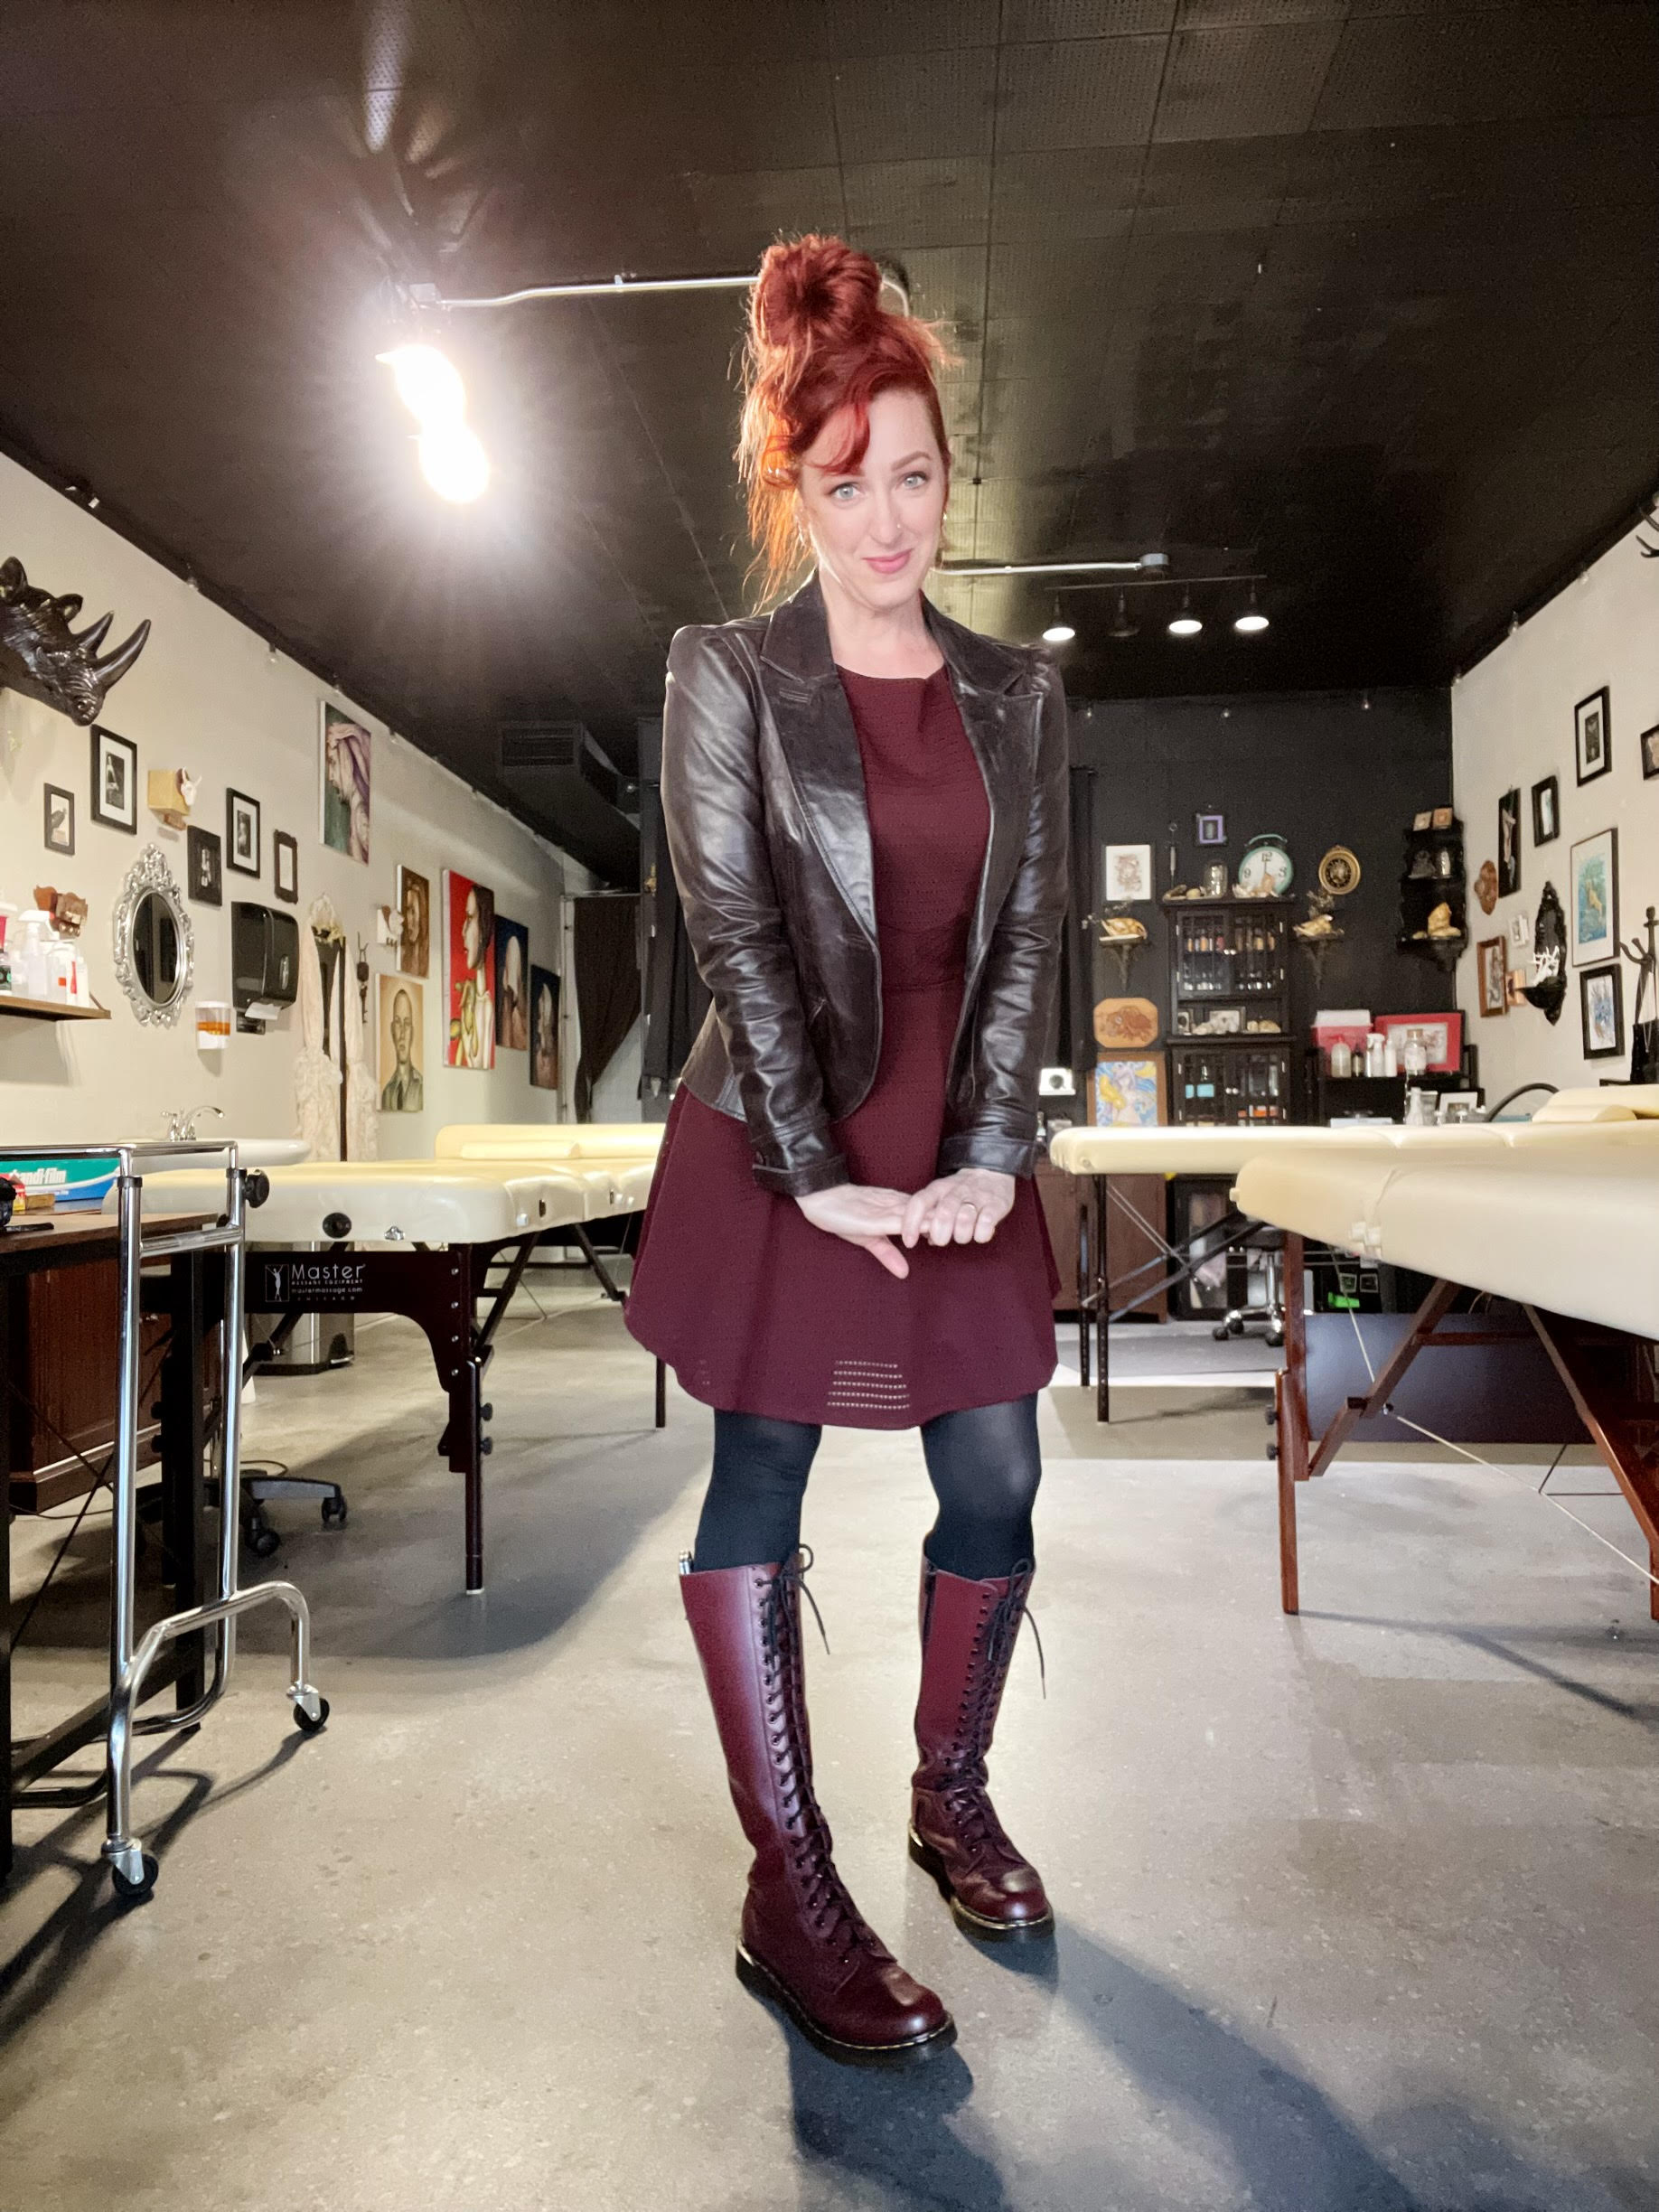 A photo of a woman with red hair and a leather jacket standing in an art studio